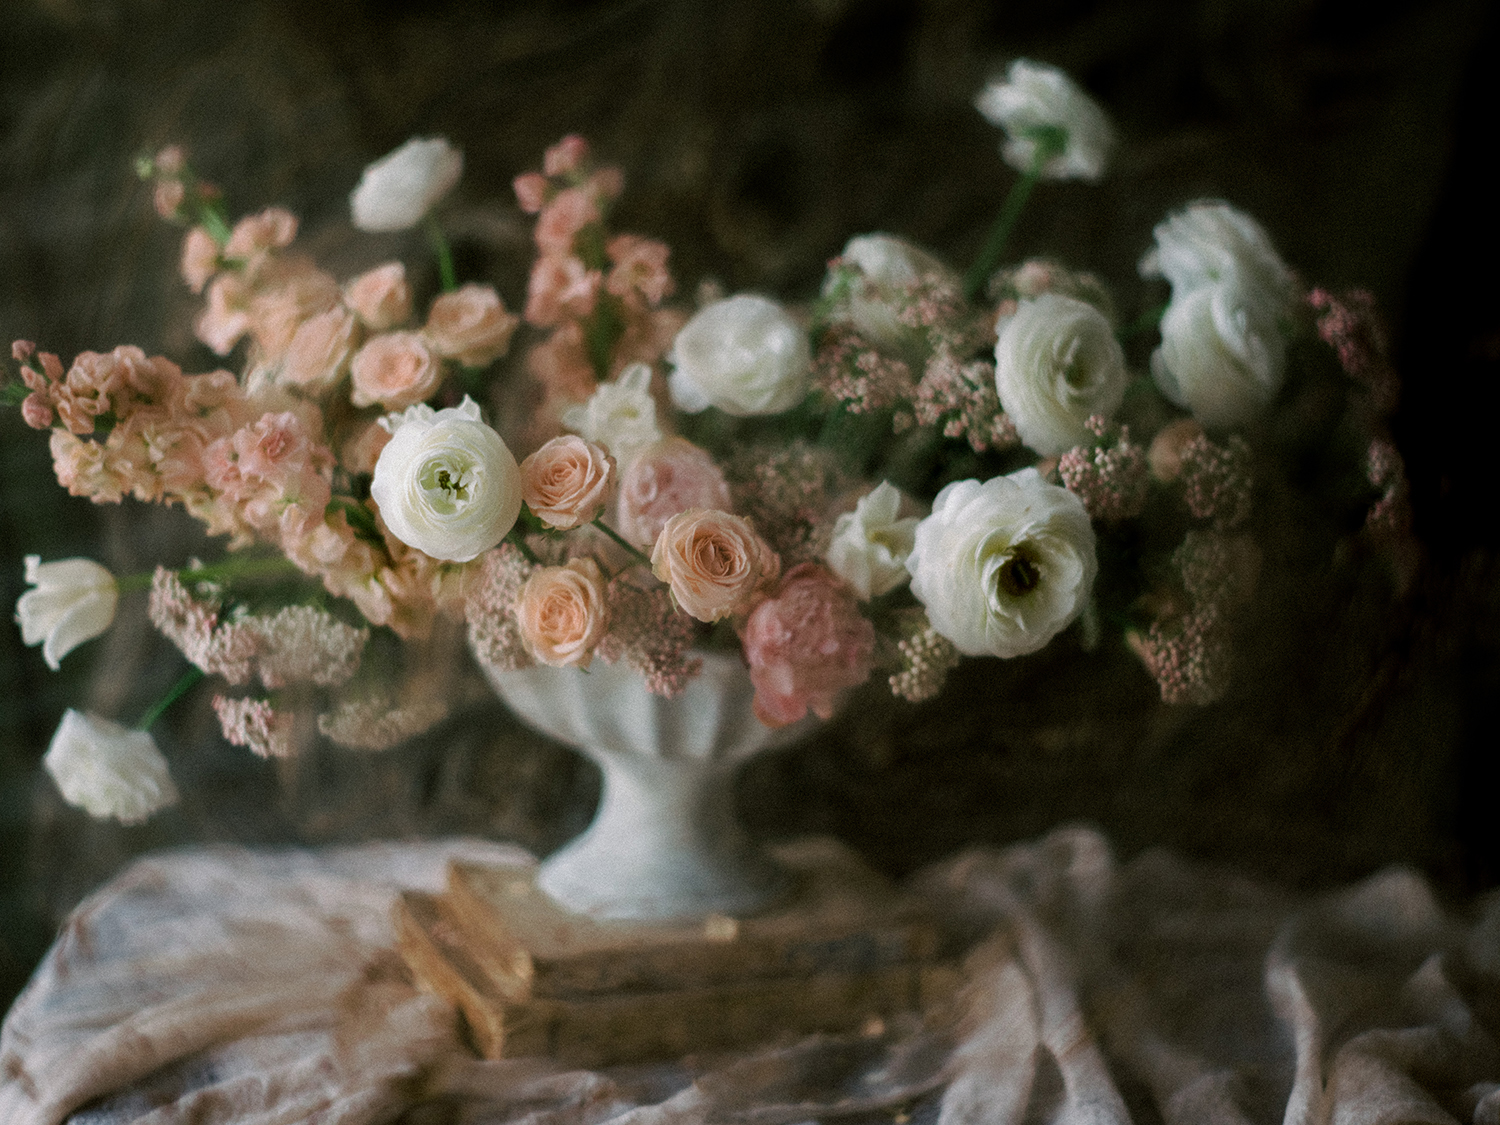 Wedding flowers, inspiration & ideas for your event, a more dramatic approach